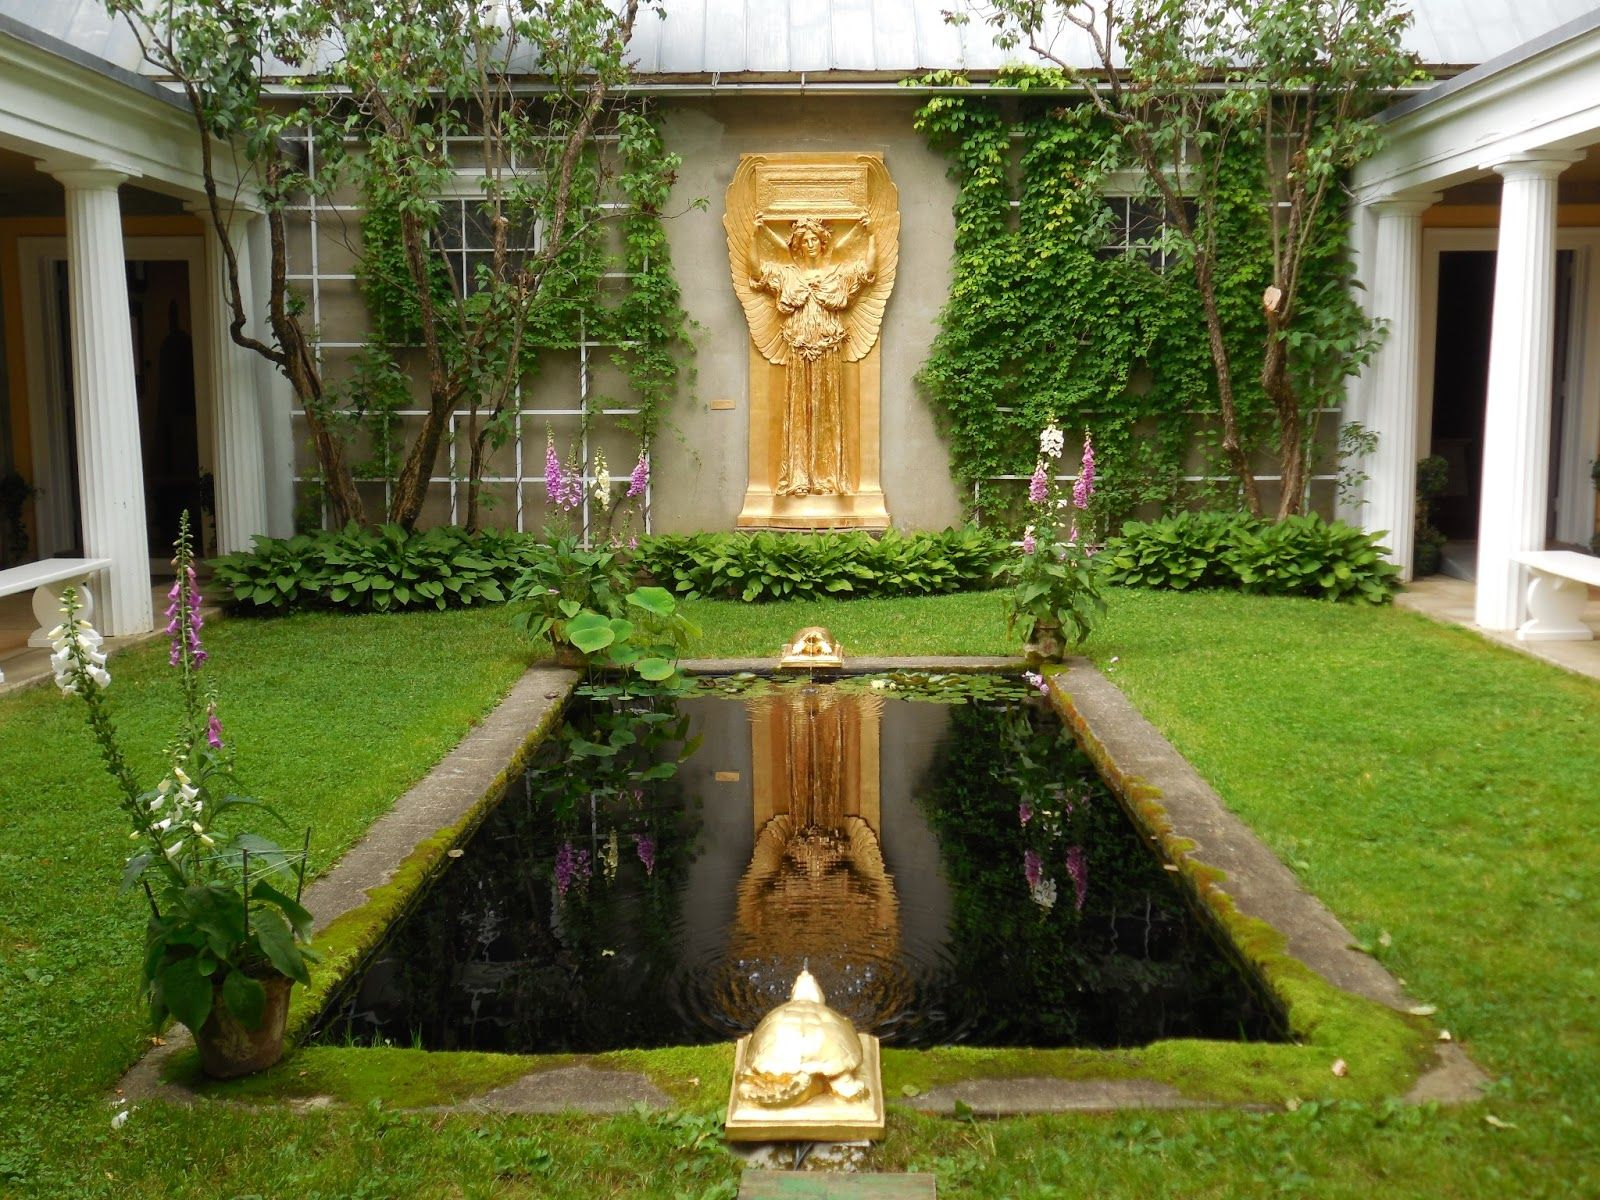 The Home Gardens And Studios Of Augustus Saint Gaudens Who Was One Americas Greatest Sculptors Is Only National Park In New Hampshire